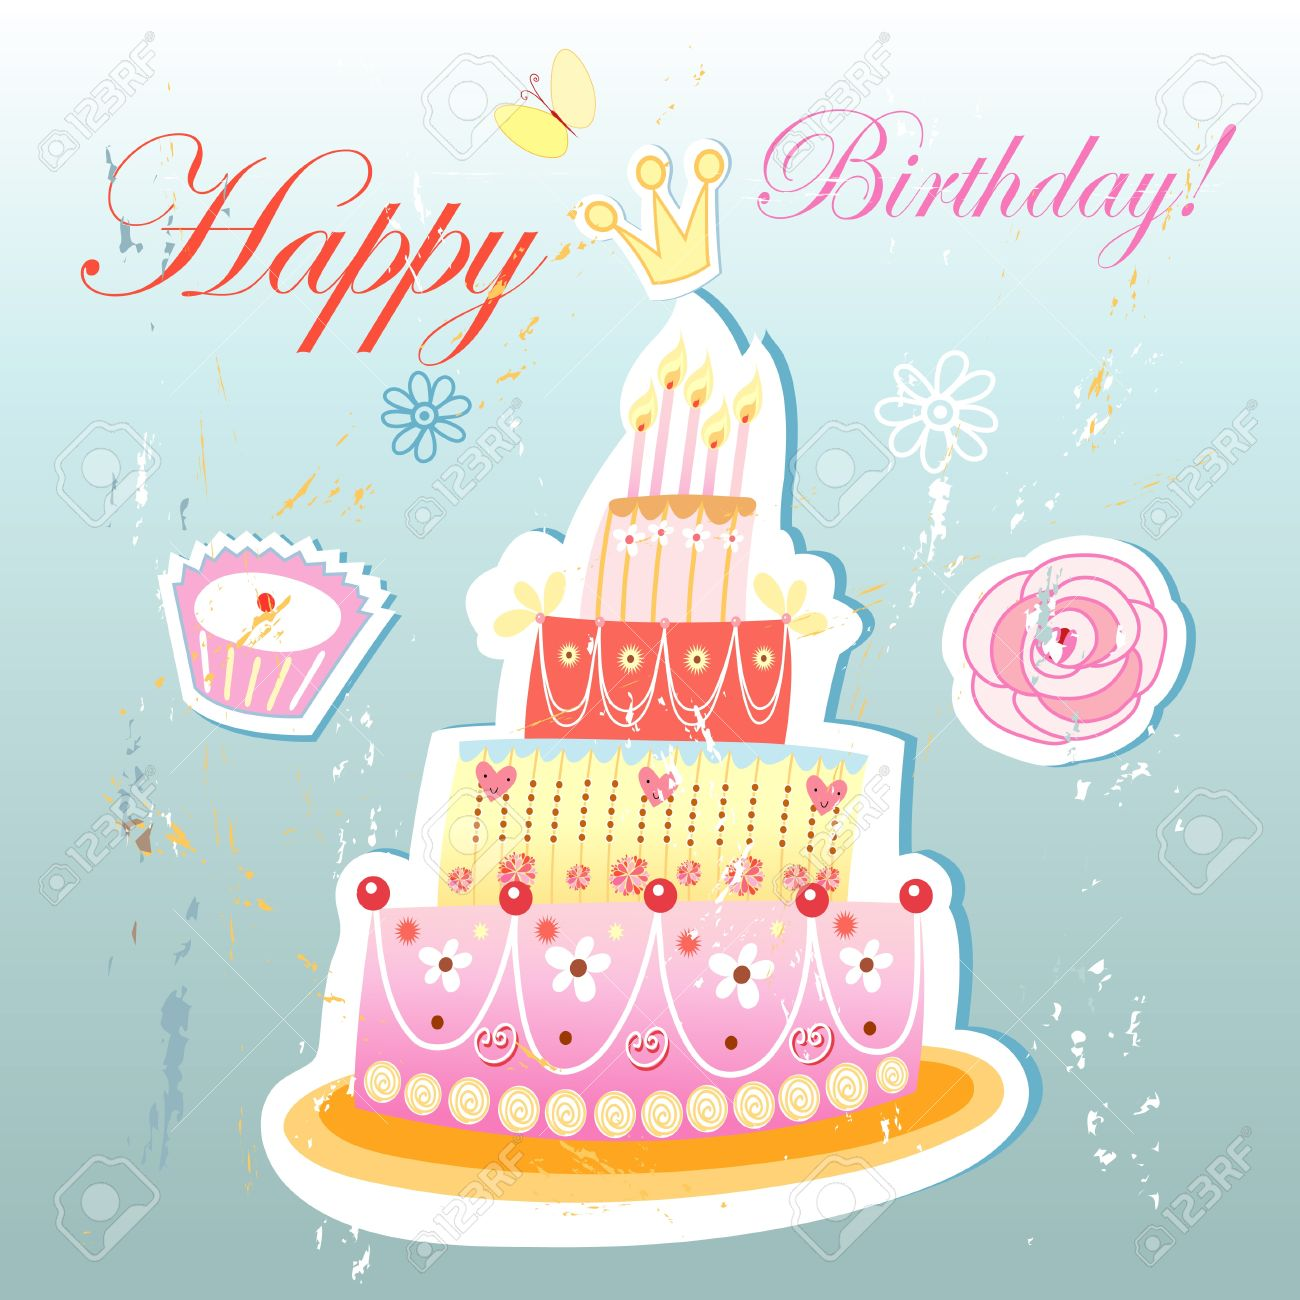 Bright Beautiful Birthday Cake On A Vintage Light Blue Background